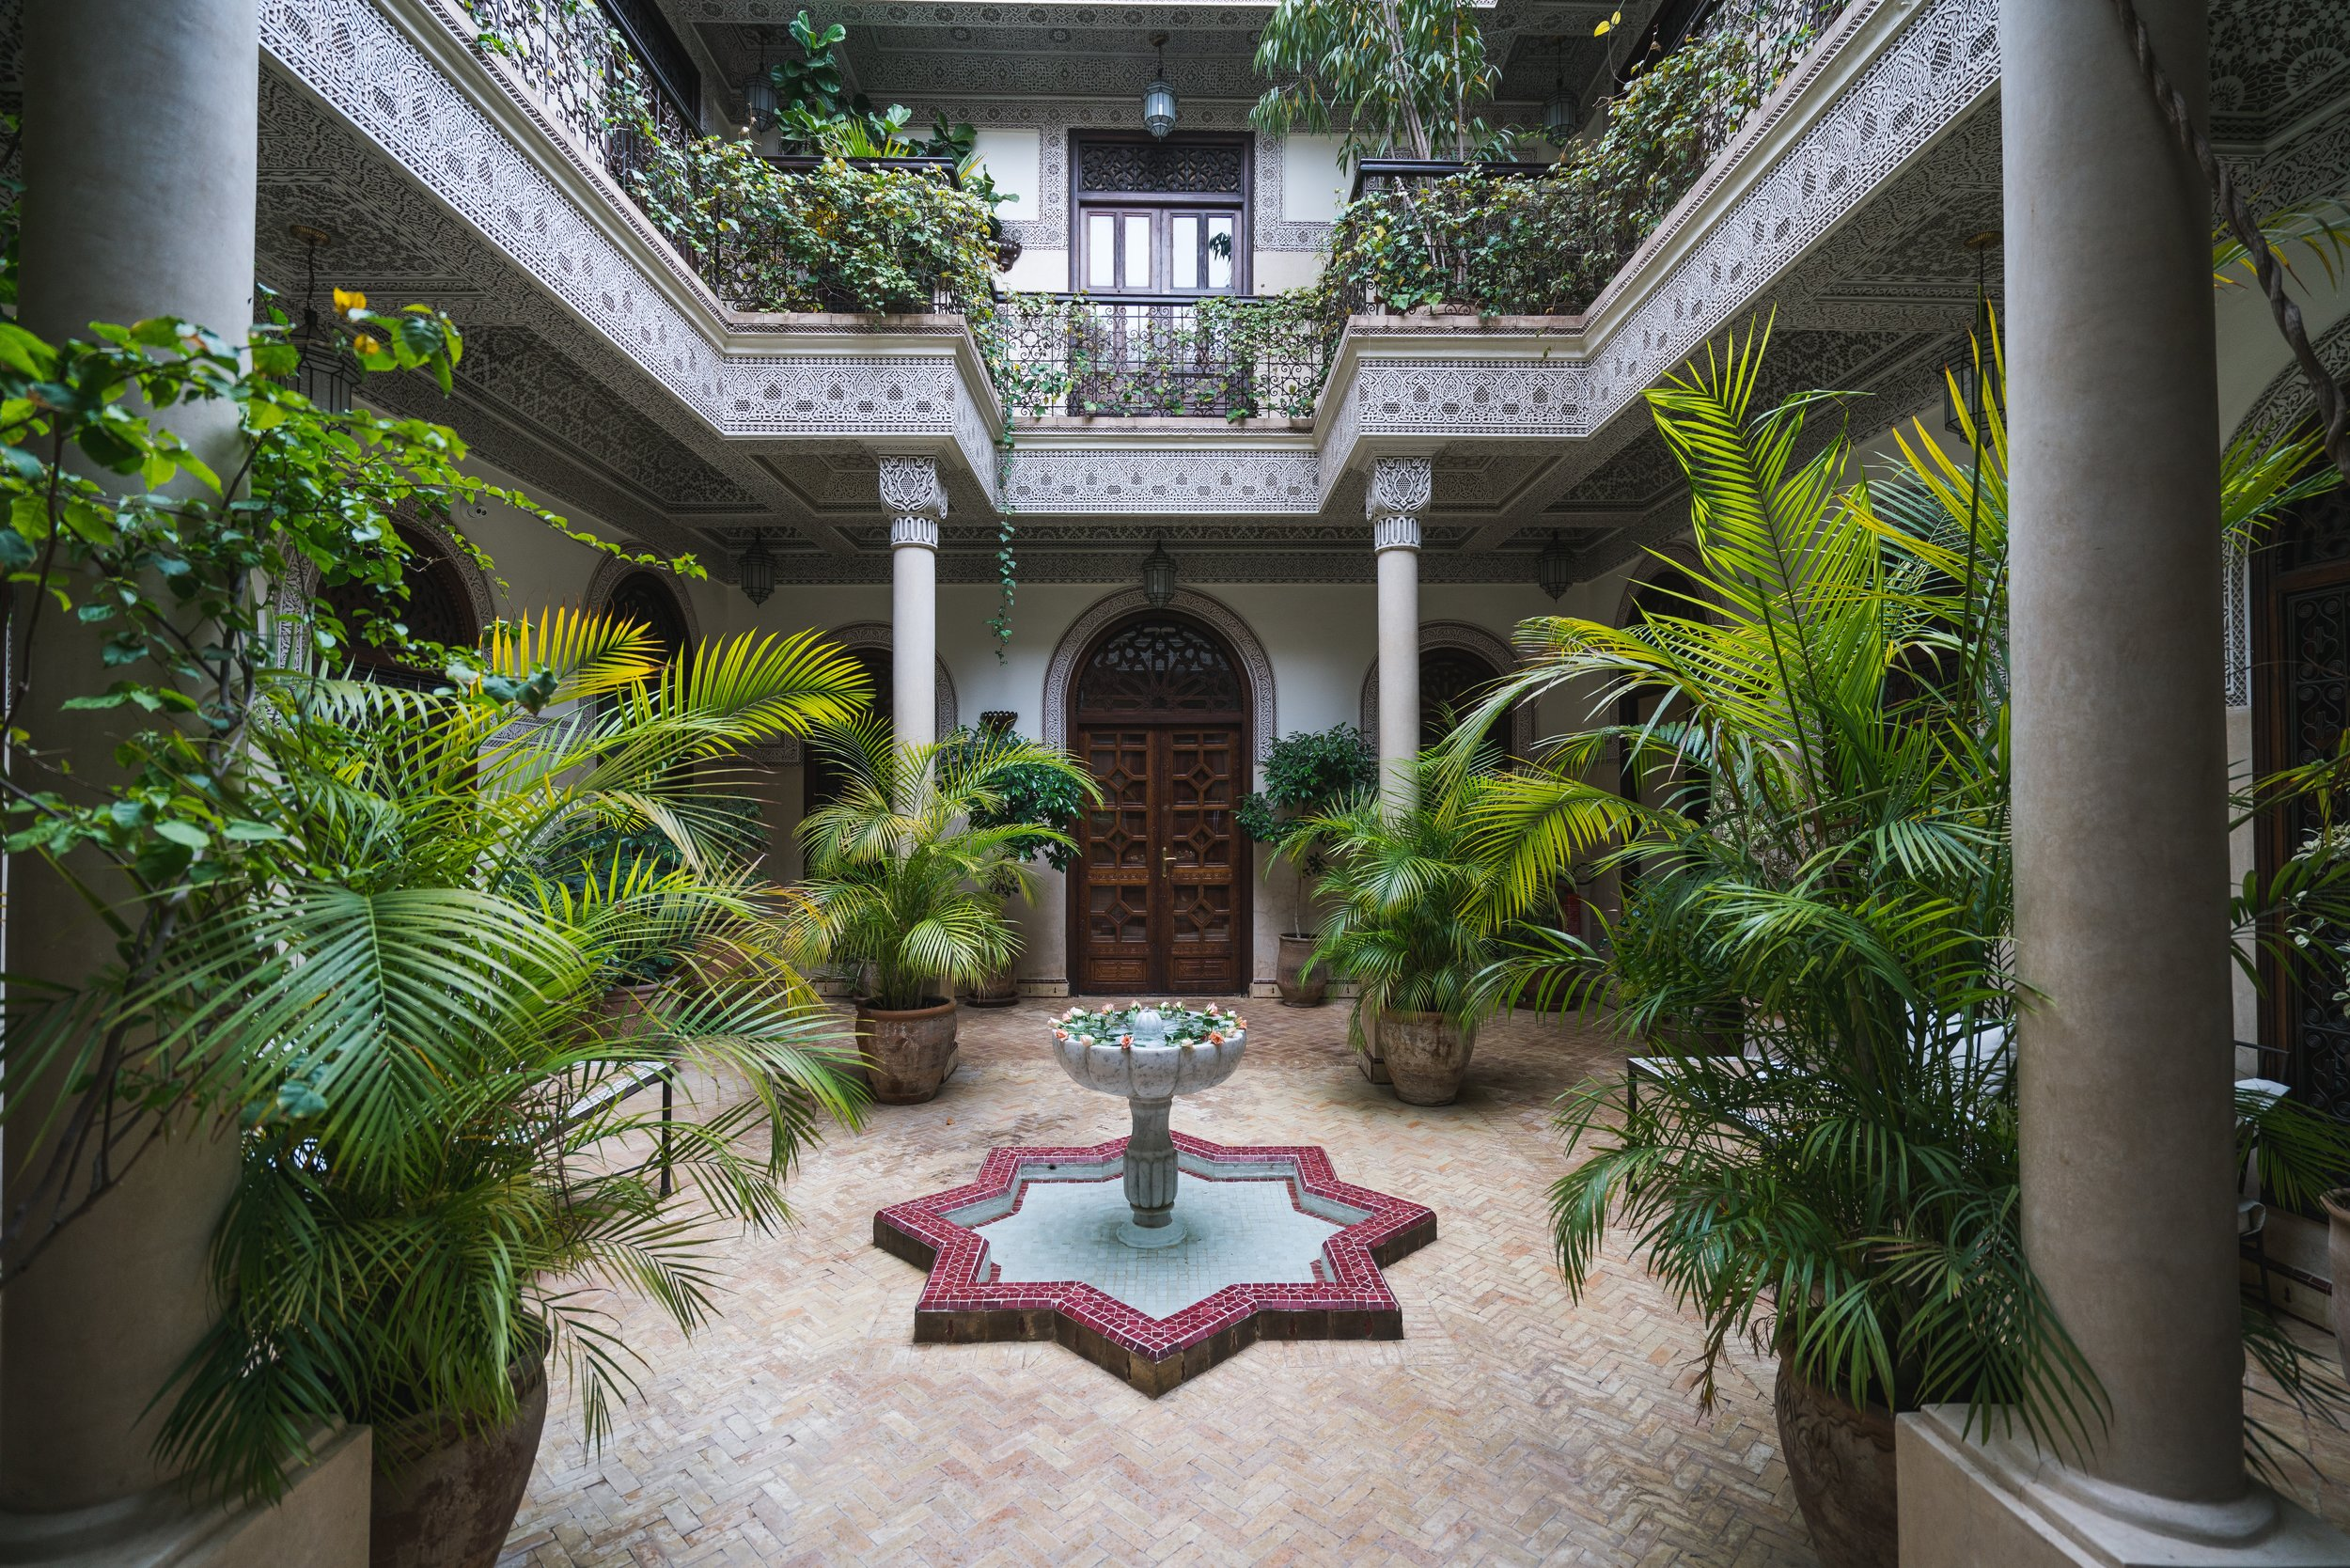 Courtyards in Morocco